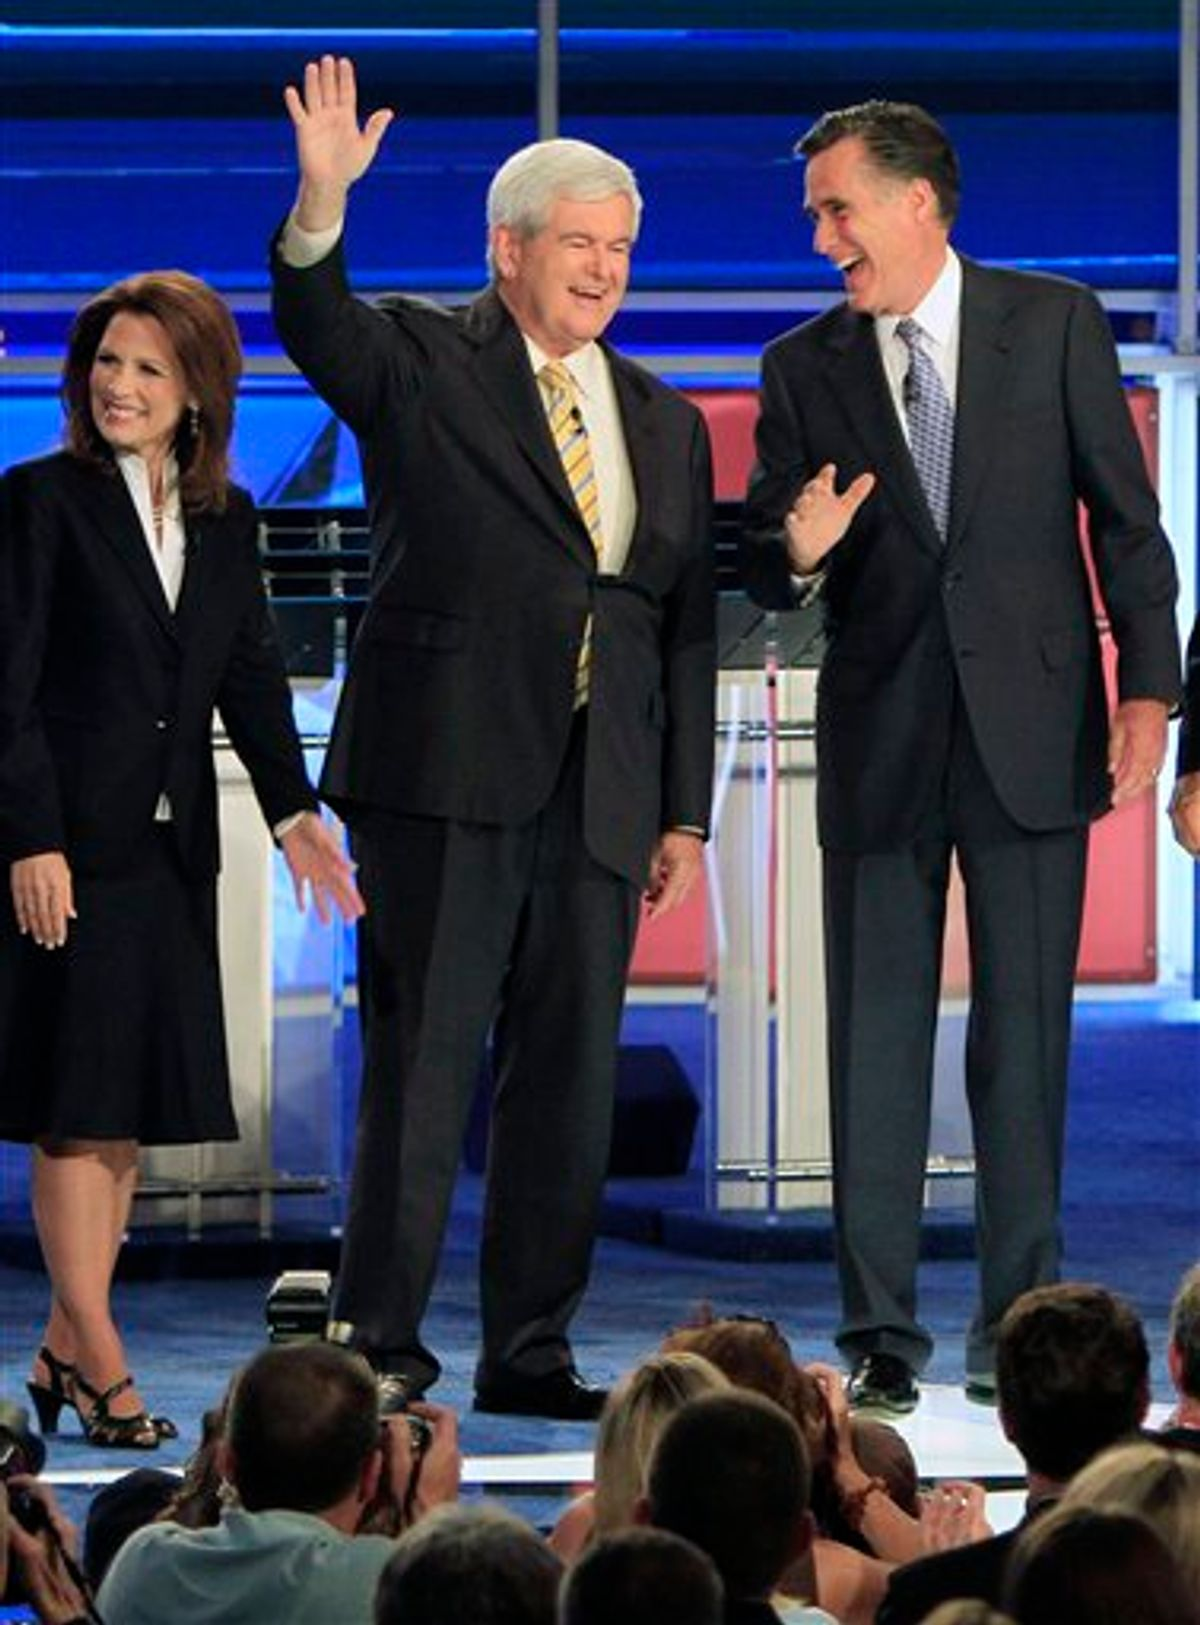 Former Massachusetts Gov. Mitt Romney, right, and former House Speaker Newt Gingrich share a laugh as they wave before the first New Hampshire Republican presidential debate at St. Anselm College in Manchester, N.H., Monday, June 13, 2011. Rep. Michele Bachmann, R-Minn., is at left. (AP Photo/Jim Cole)  (AP)